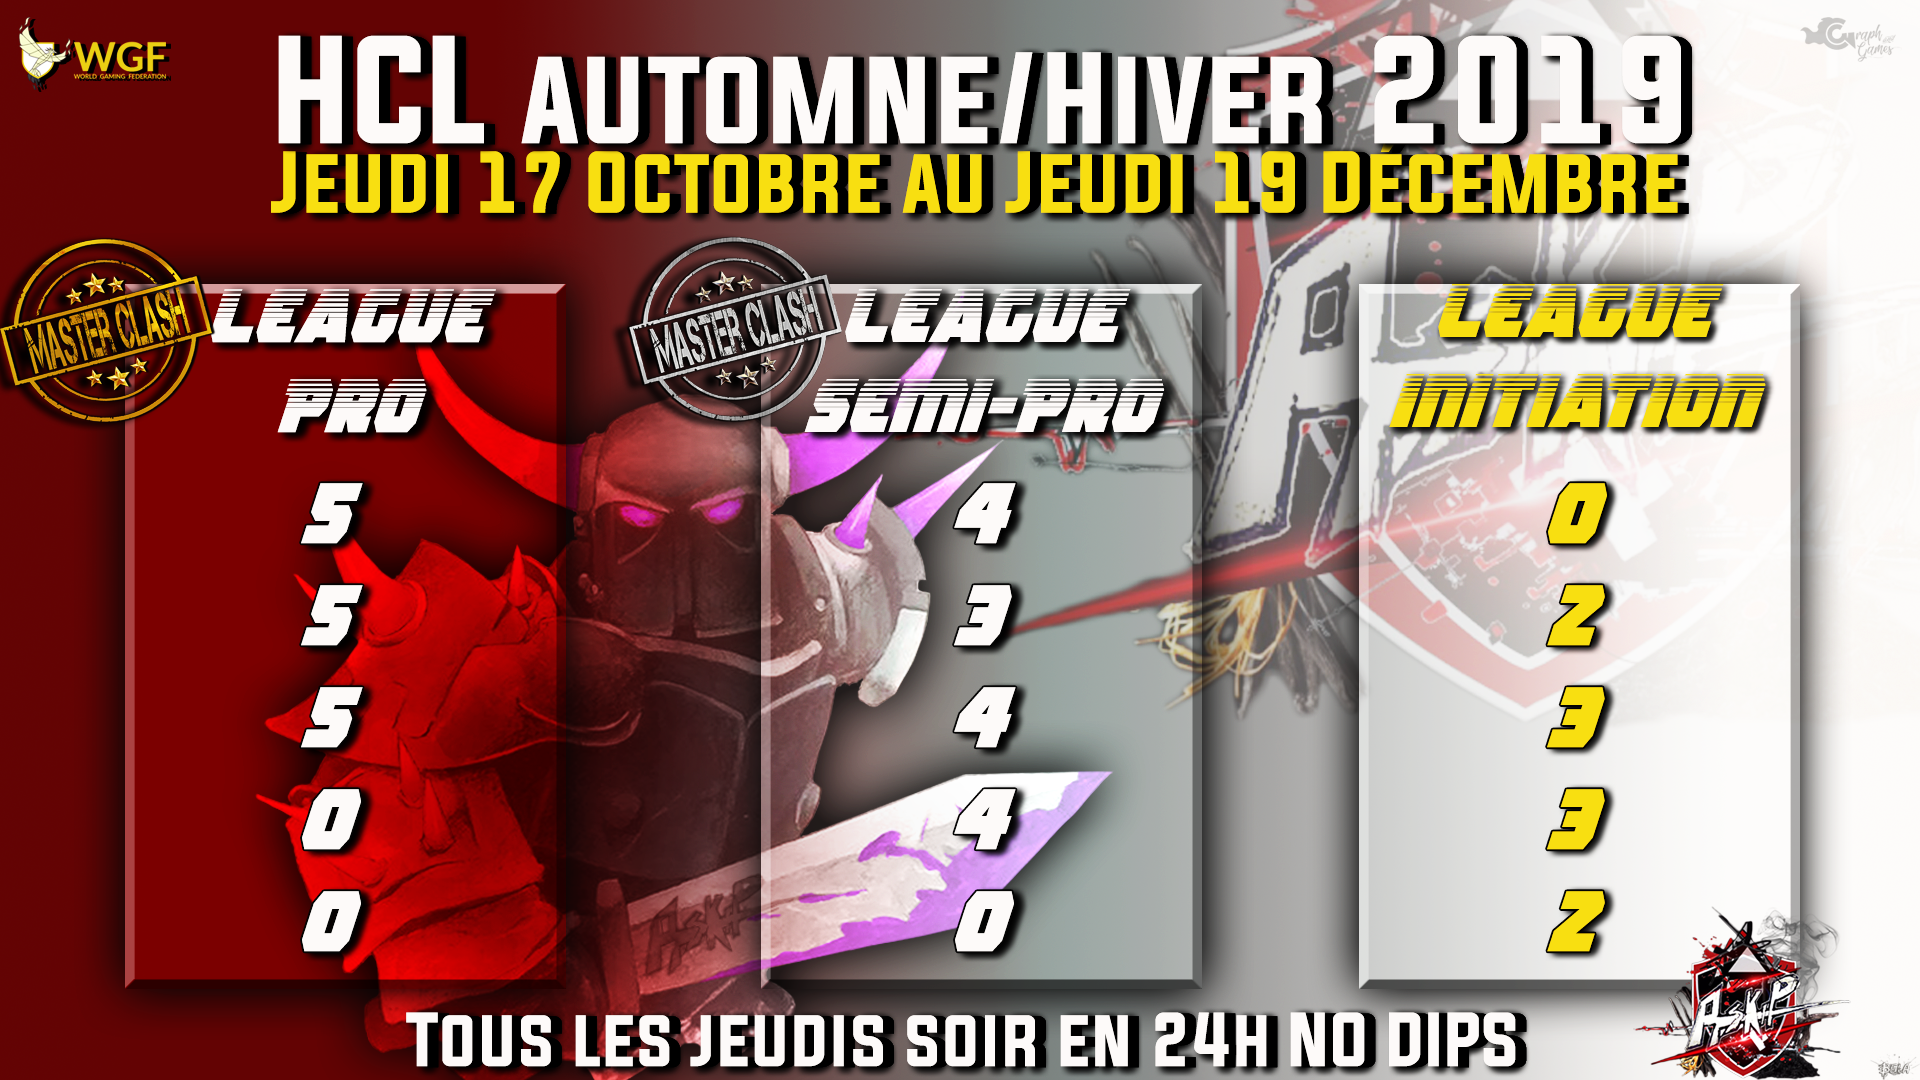 AfficheHCL-AutomneHiver2019.png